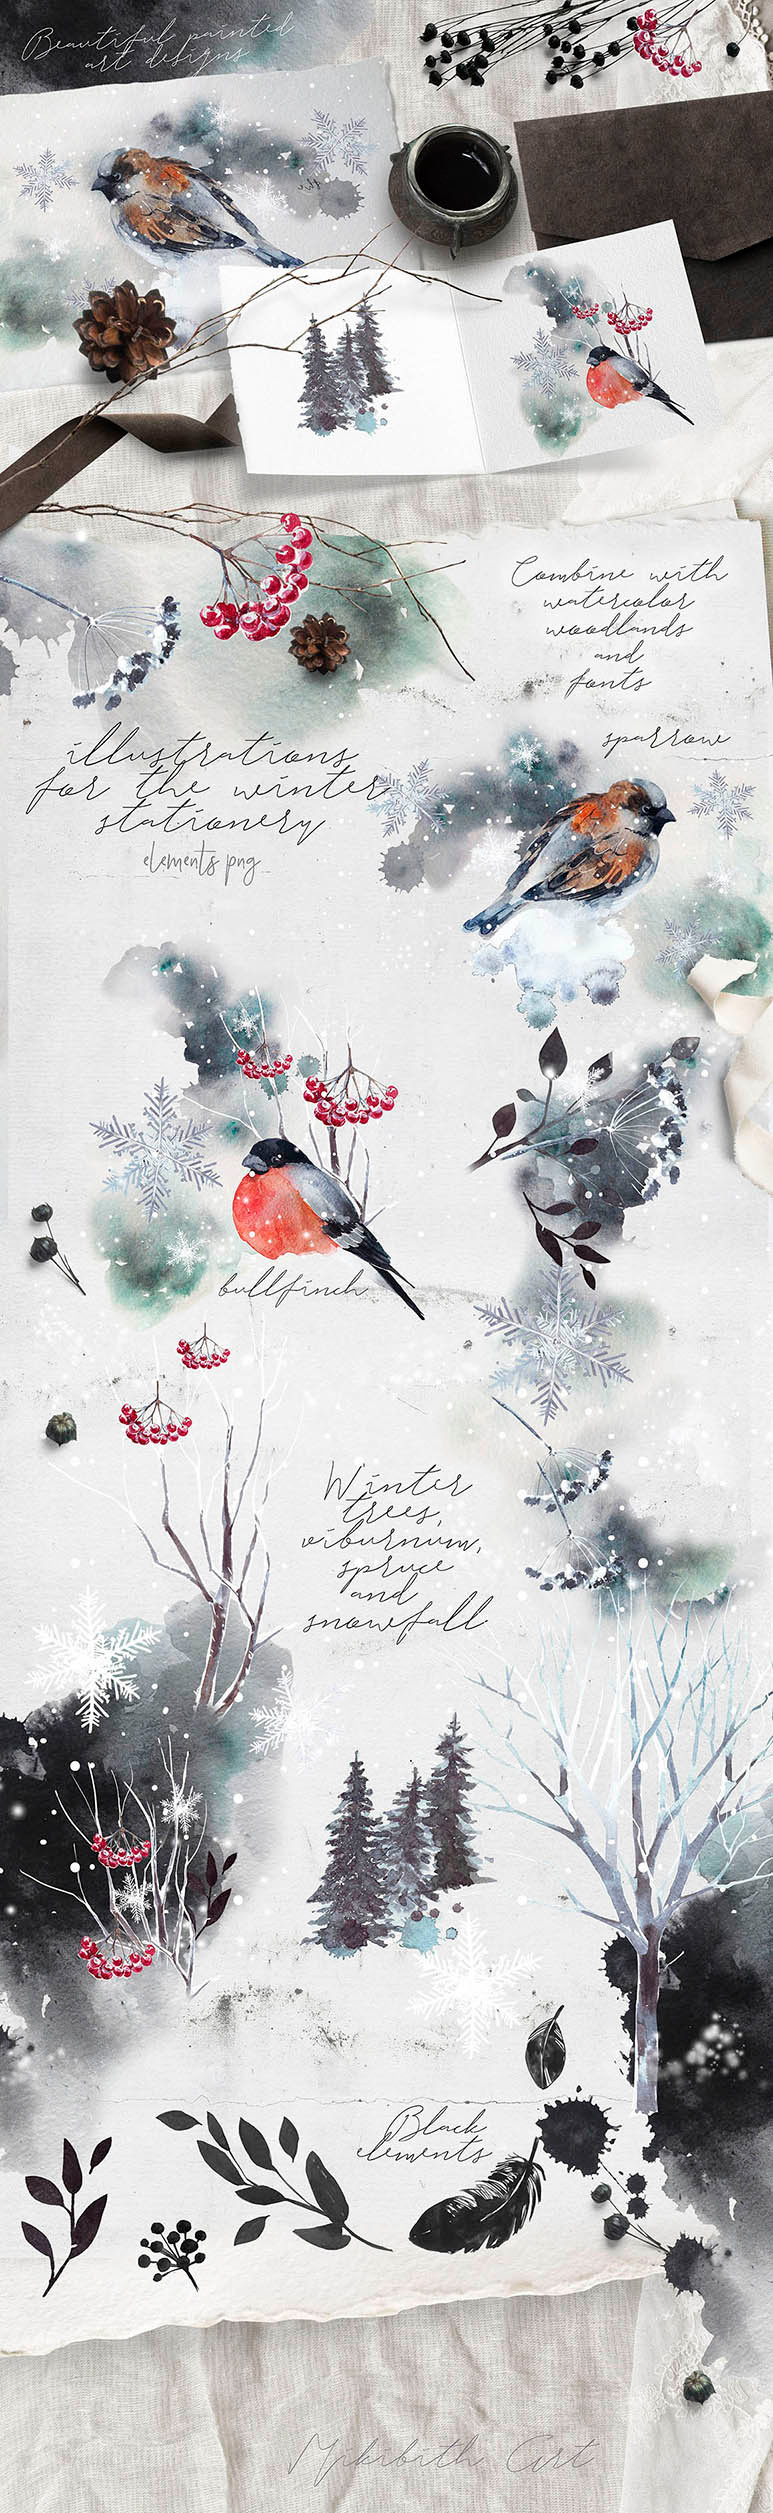 winter stationery designs